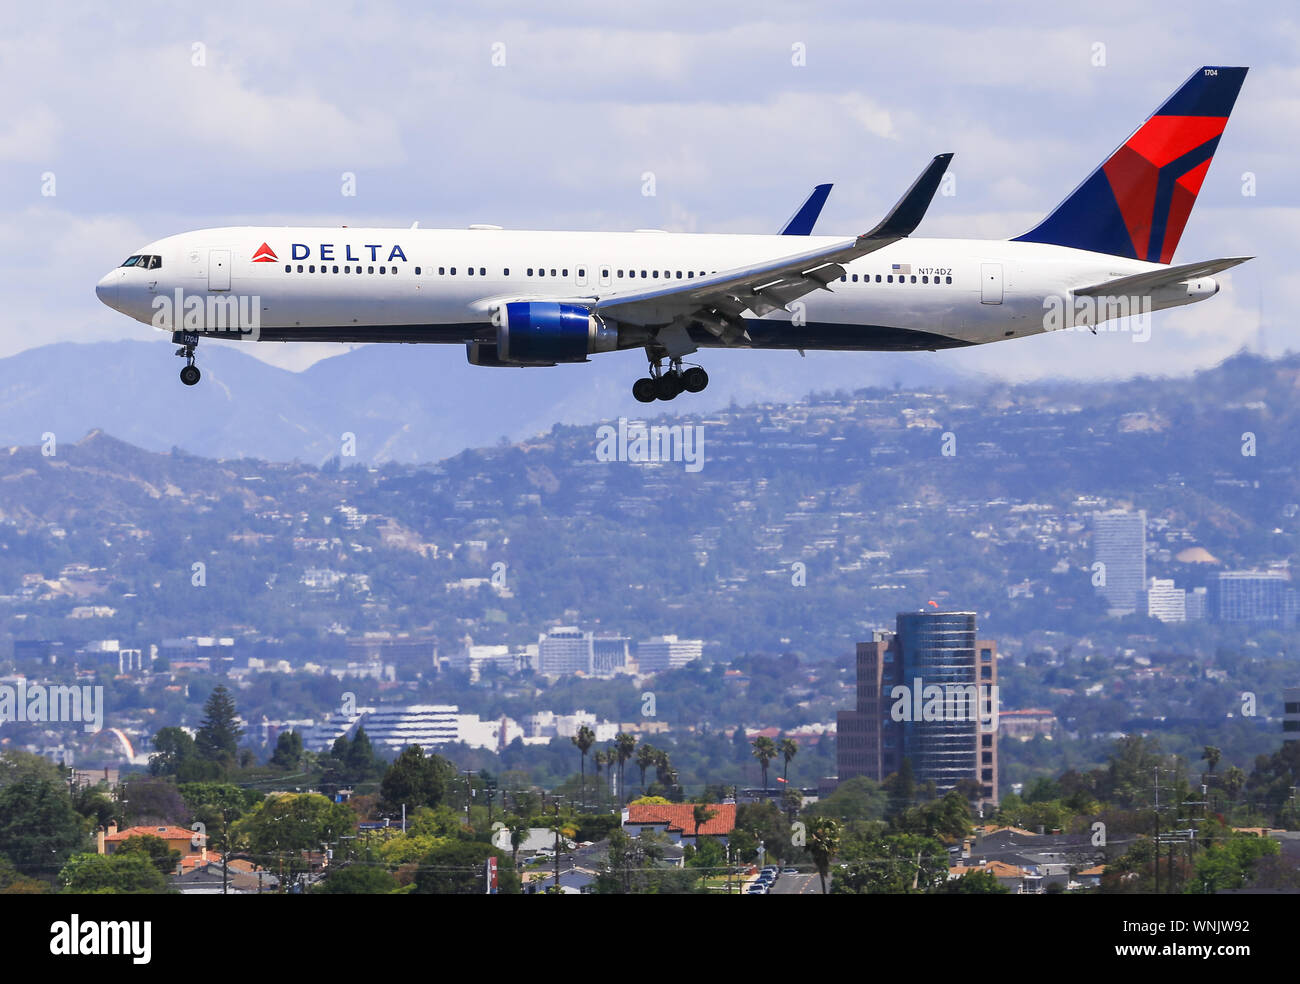 Los Angeles, California, USA - May 22, 2019: A Boeing 767 from Delta Airlines lands at the Los Angeles International Airport (LAX). In the background Stock Photo